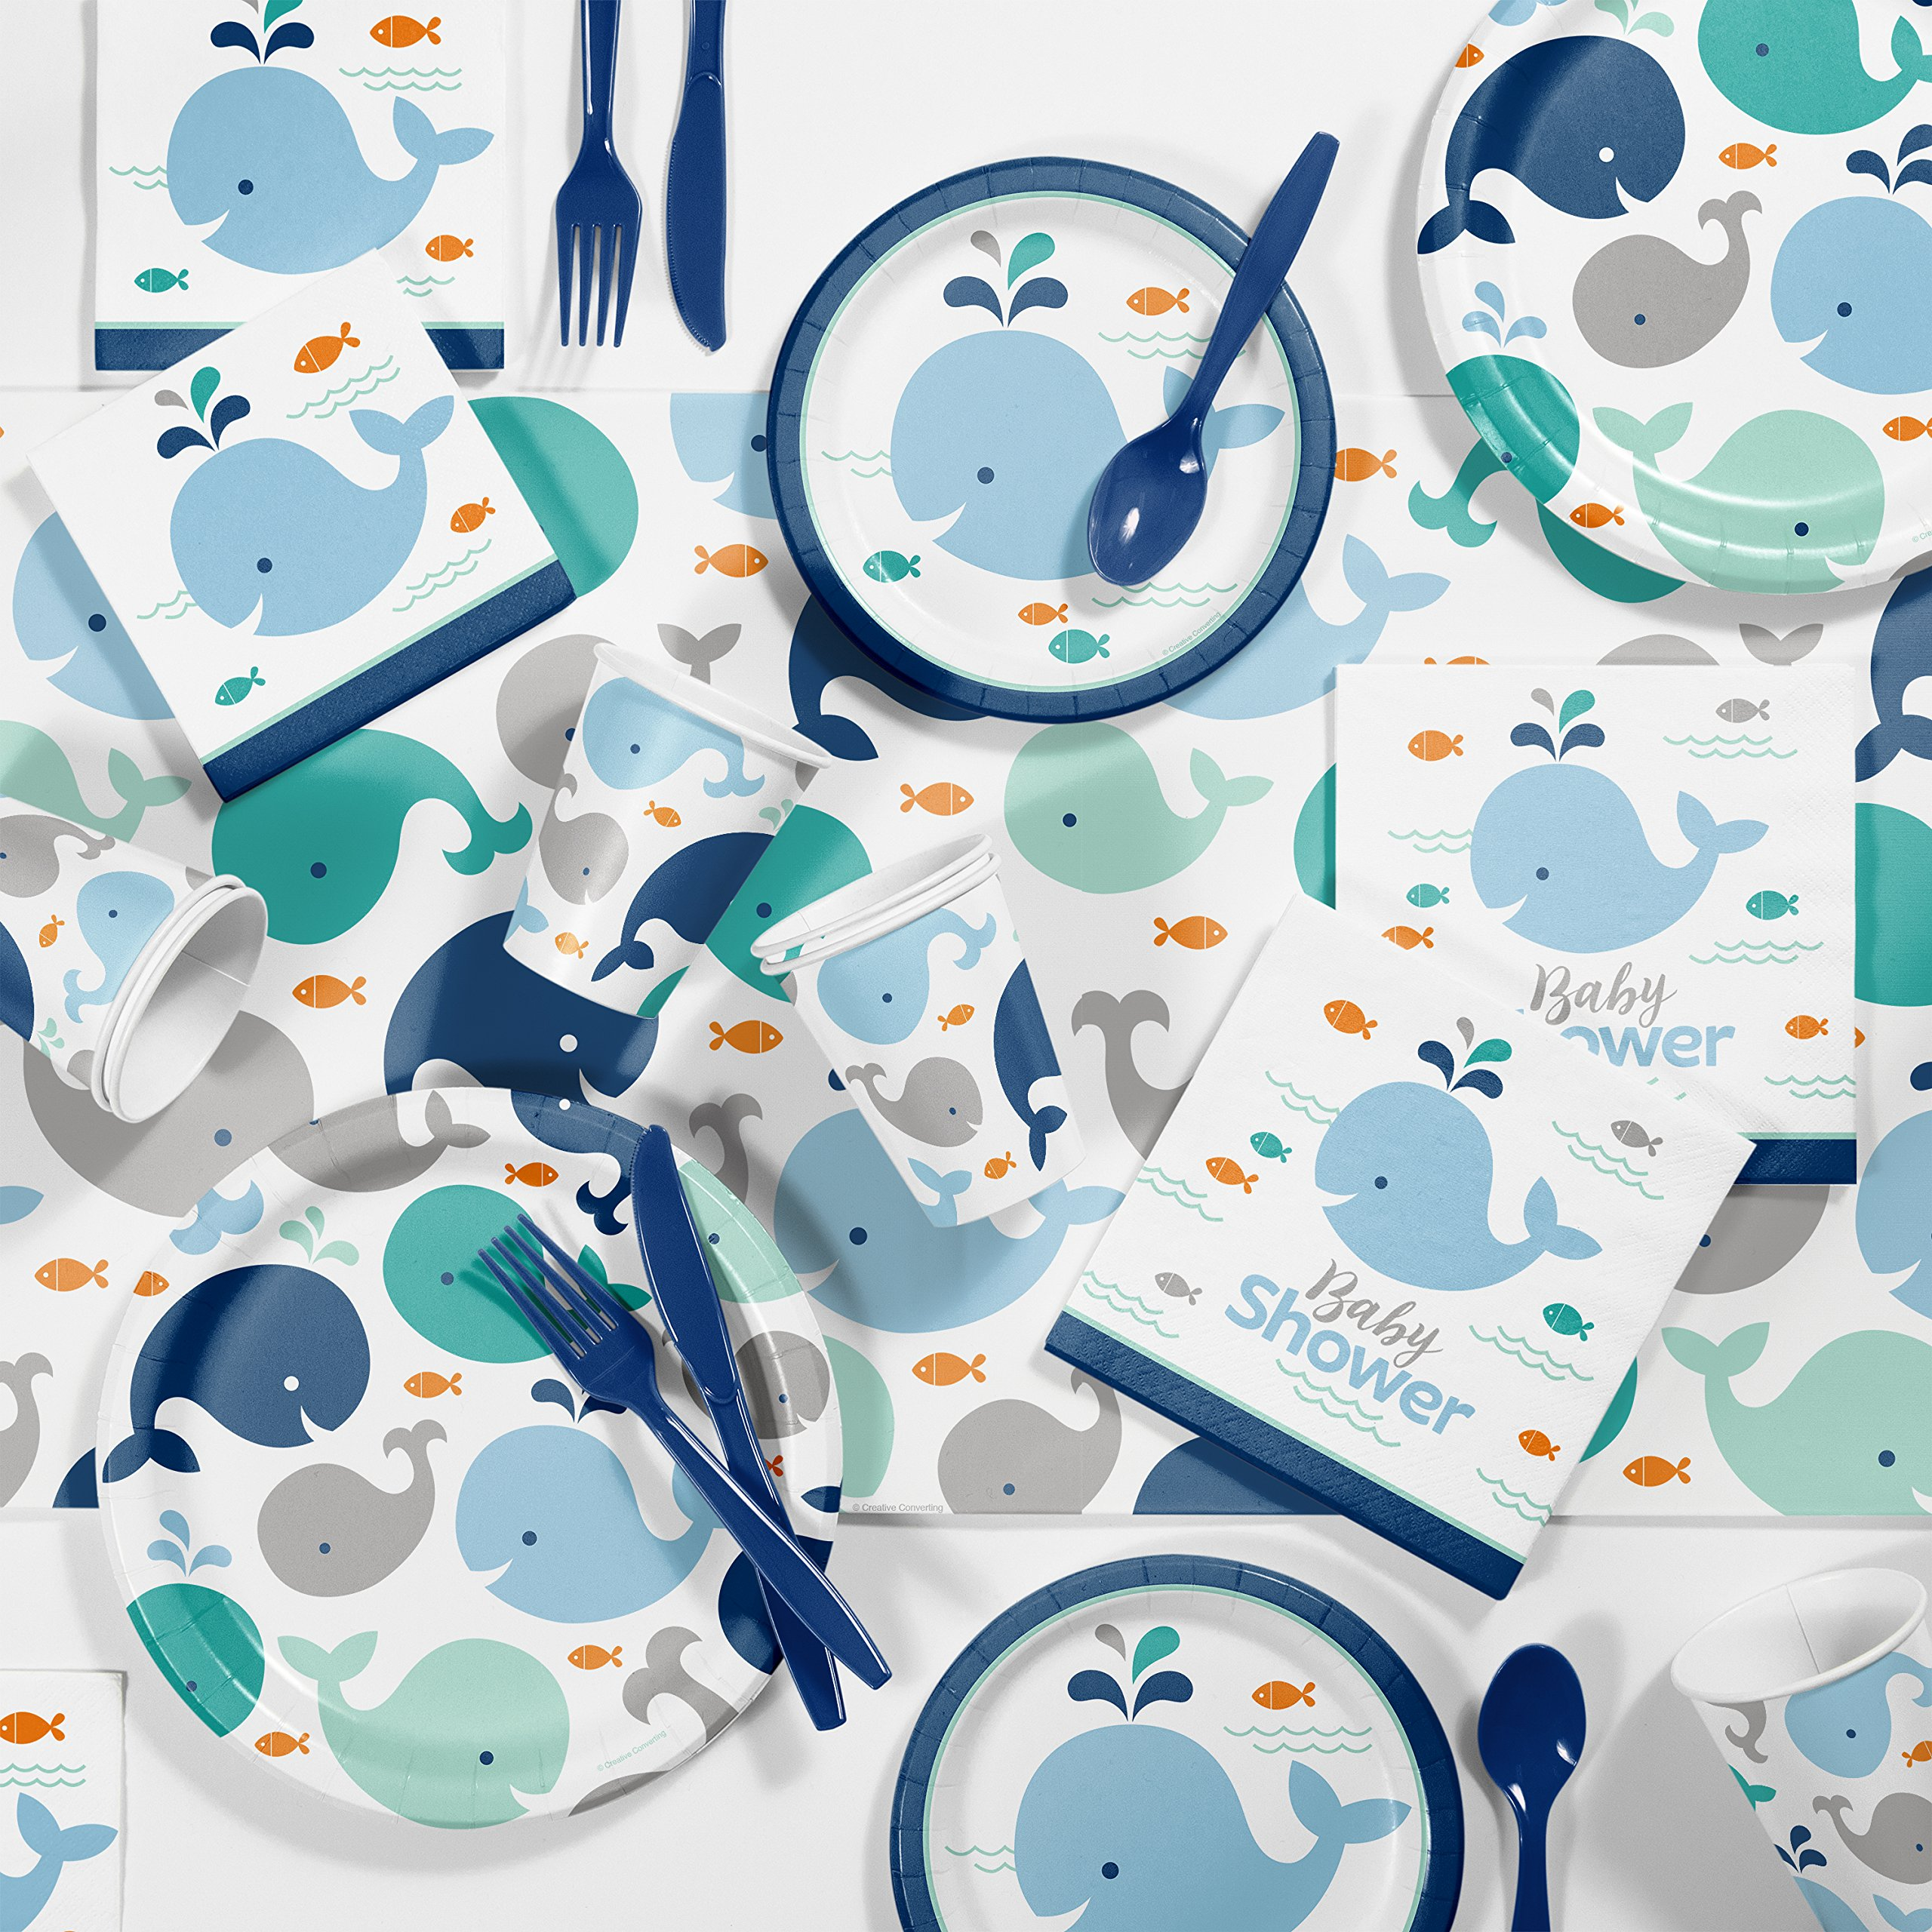 Amazon.com: Blue Baby Whale Baby Shower Decorations Kit: Health ...